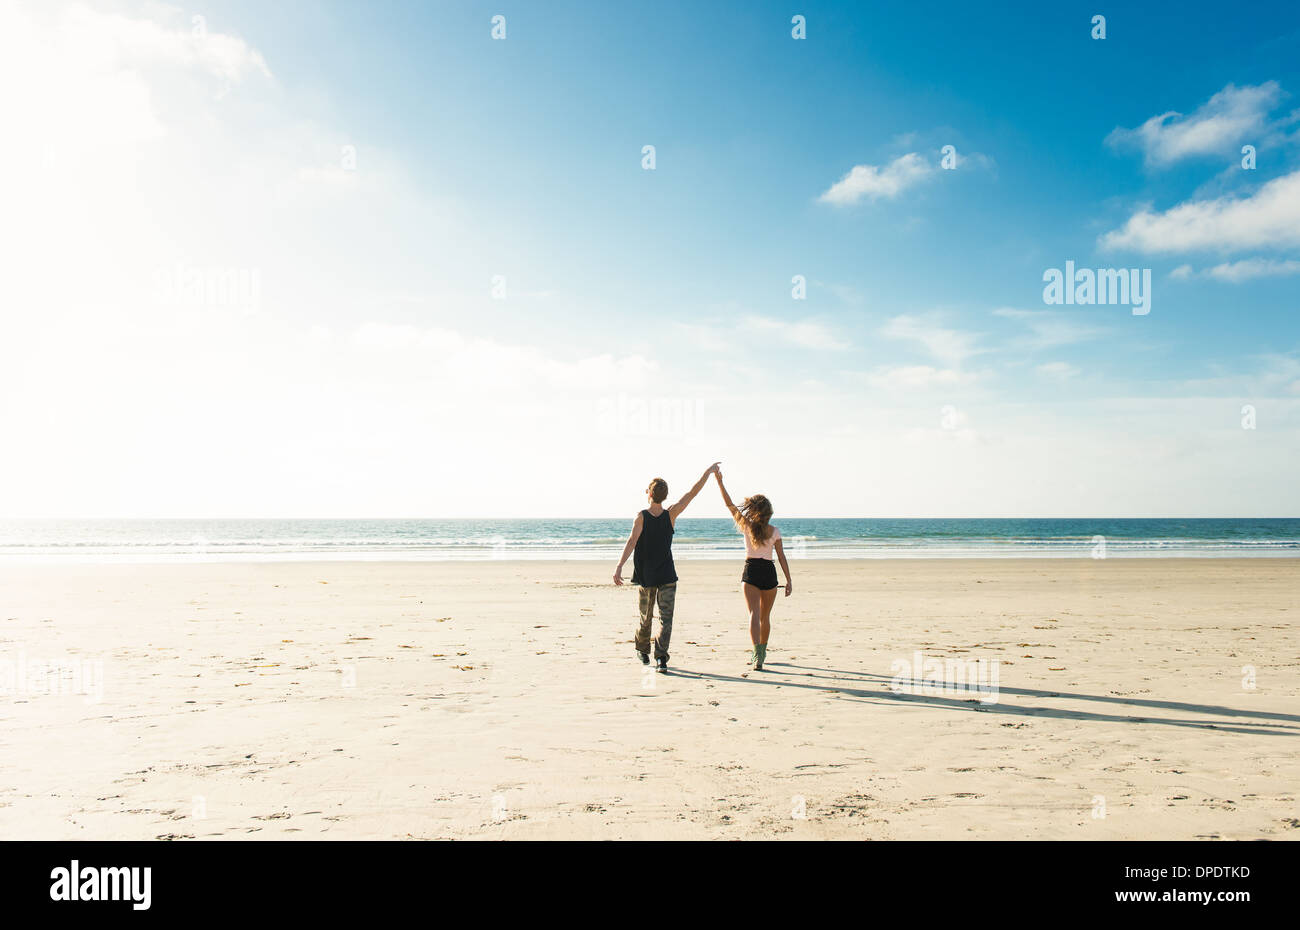 Young couple walking on San Diego beach, holding hands with arms raised Stock Photo